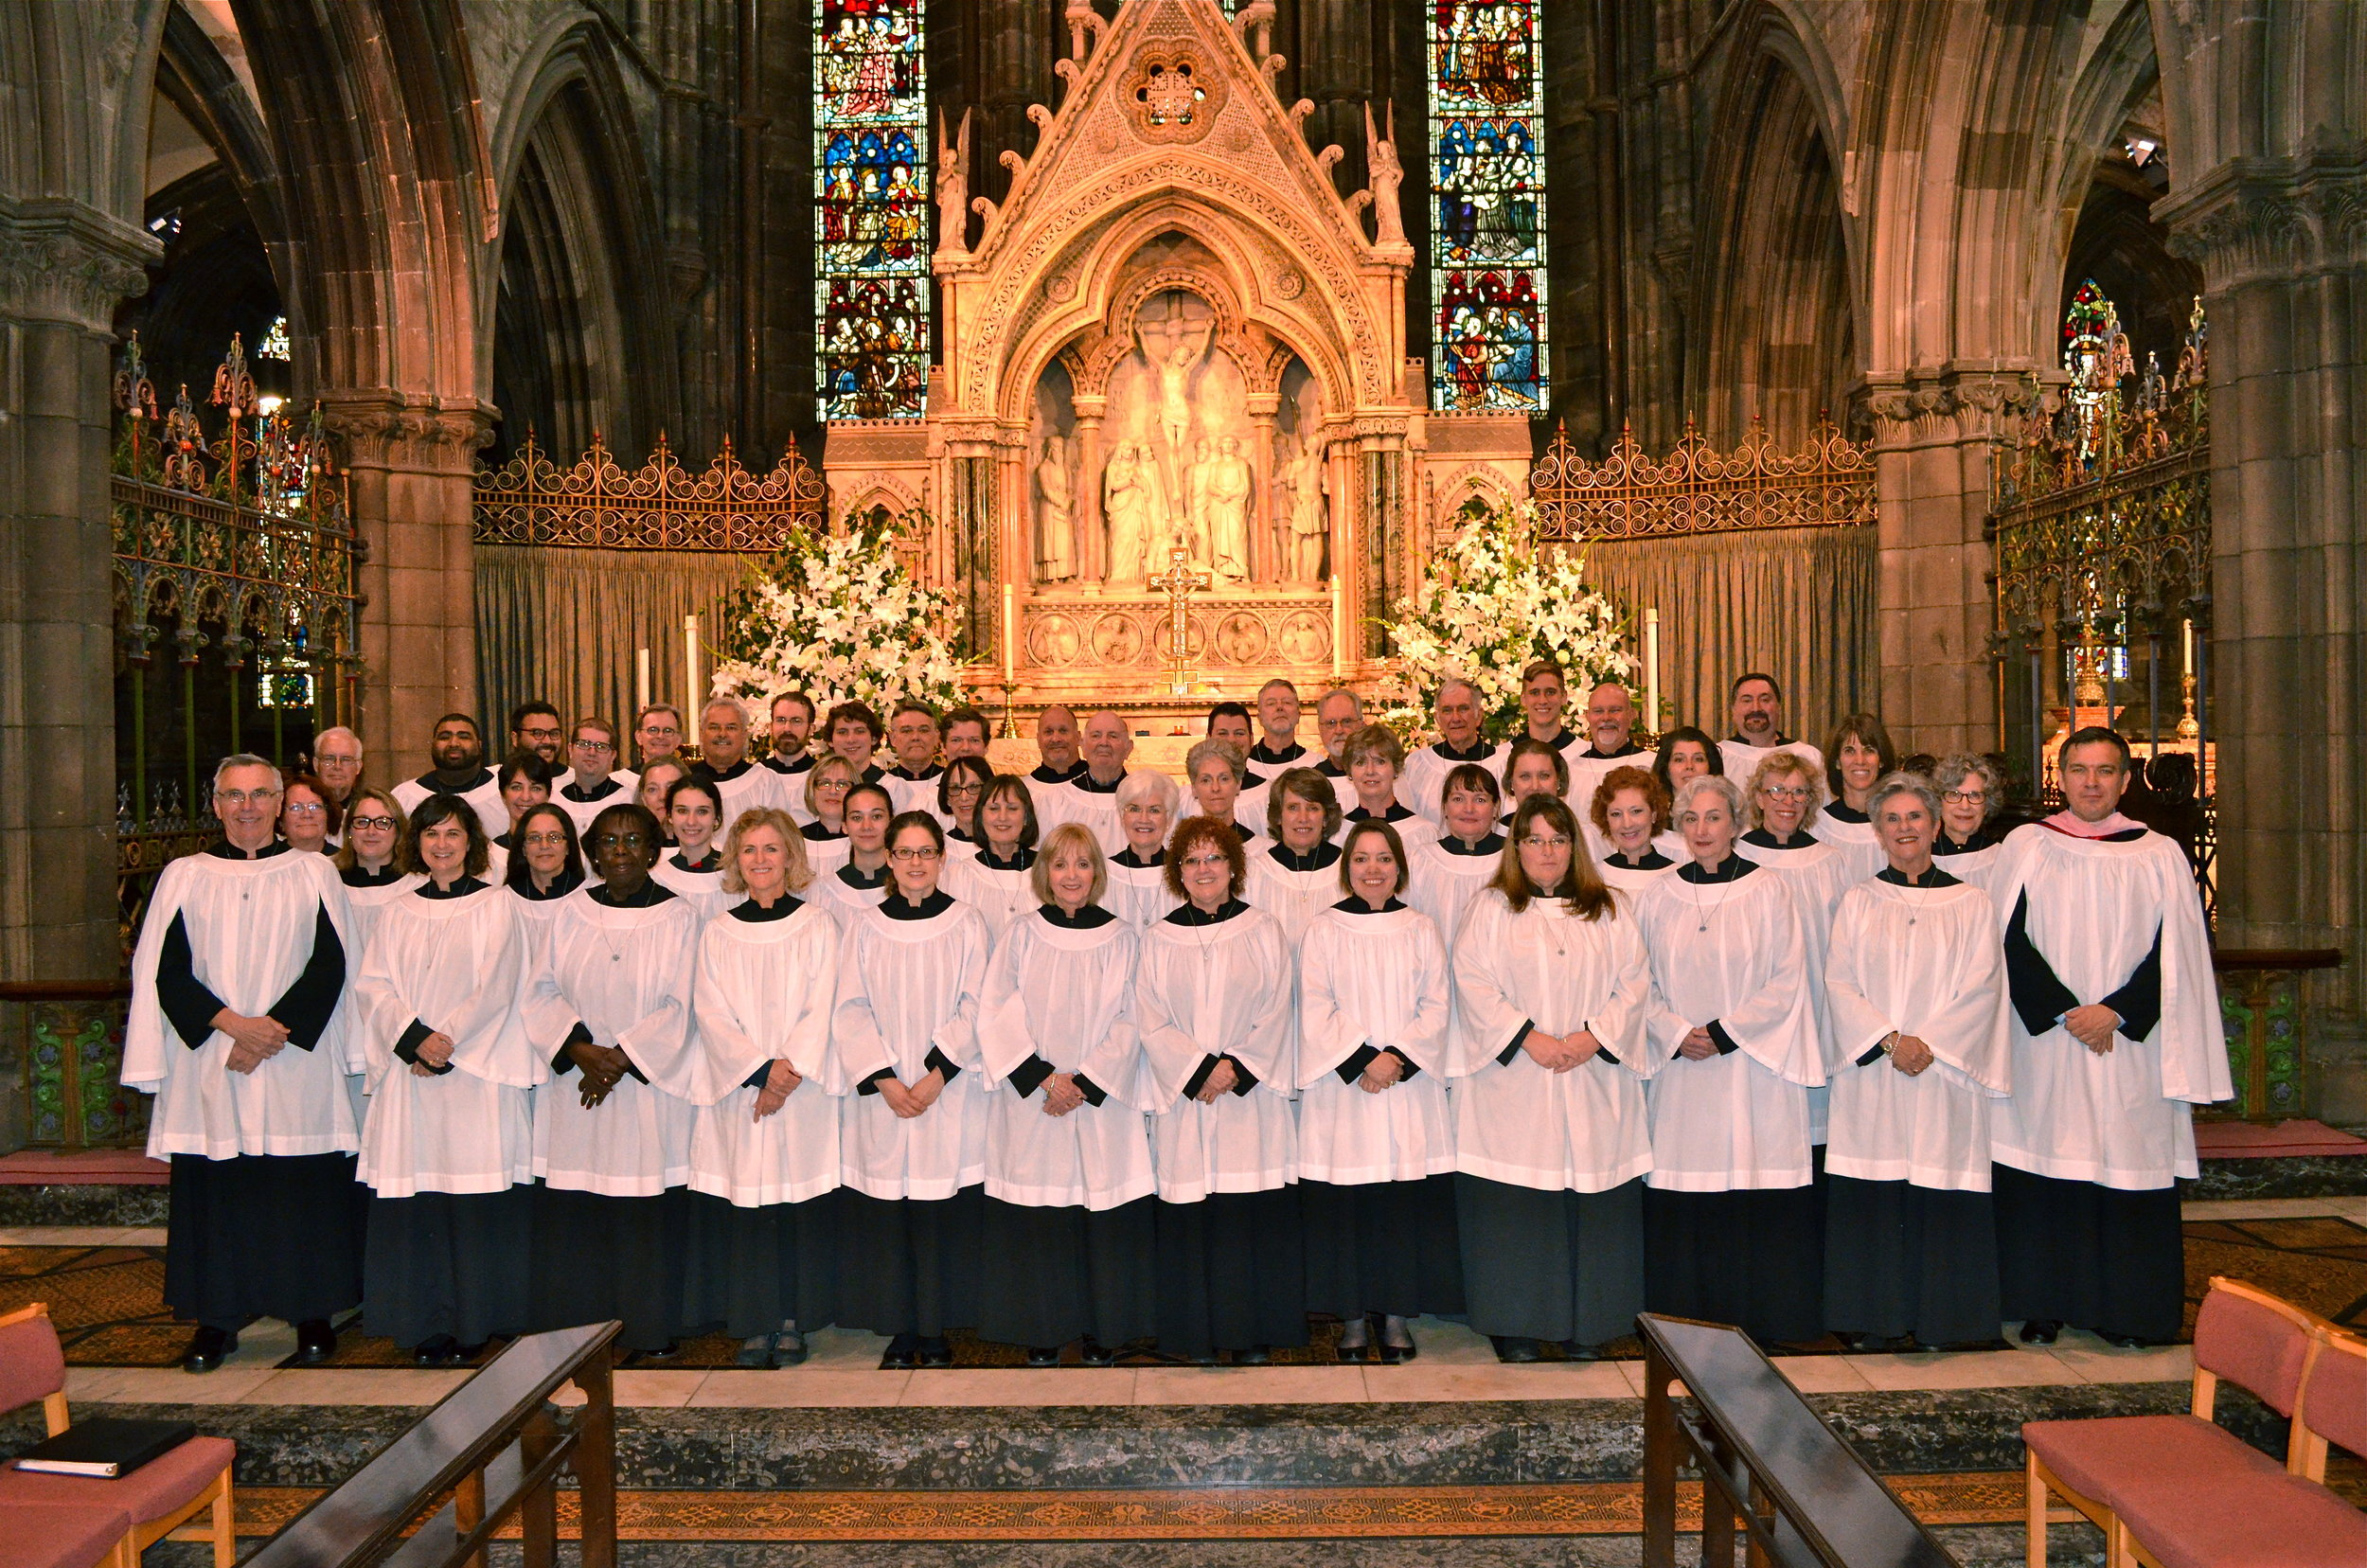 St. Paul's Choir, in residence at St. Mary's Episcopal Cathedral, Edinburgh, Scotland.